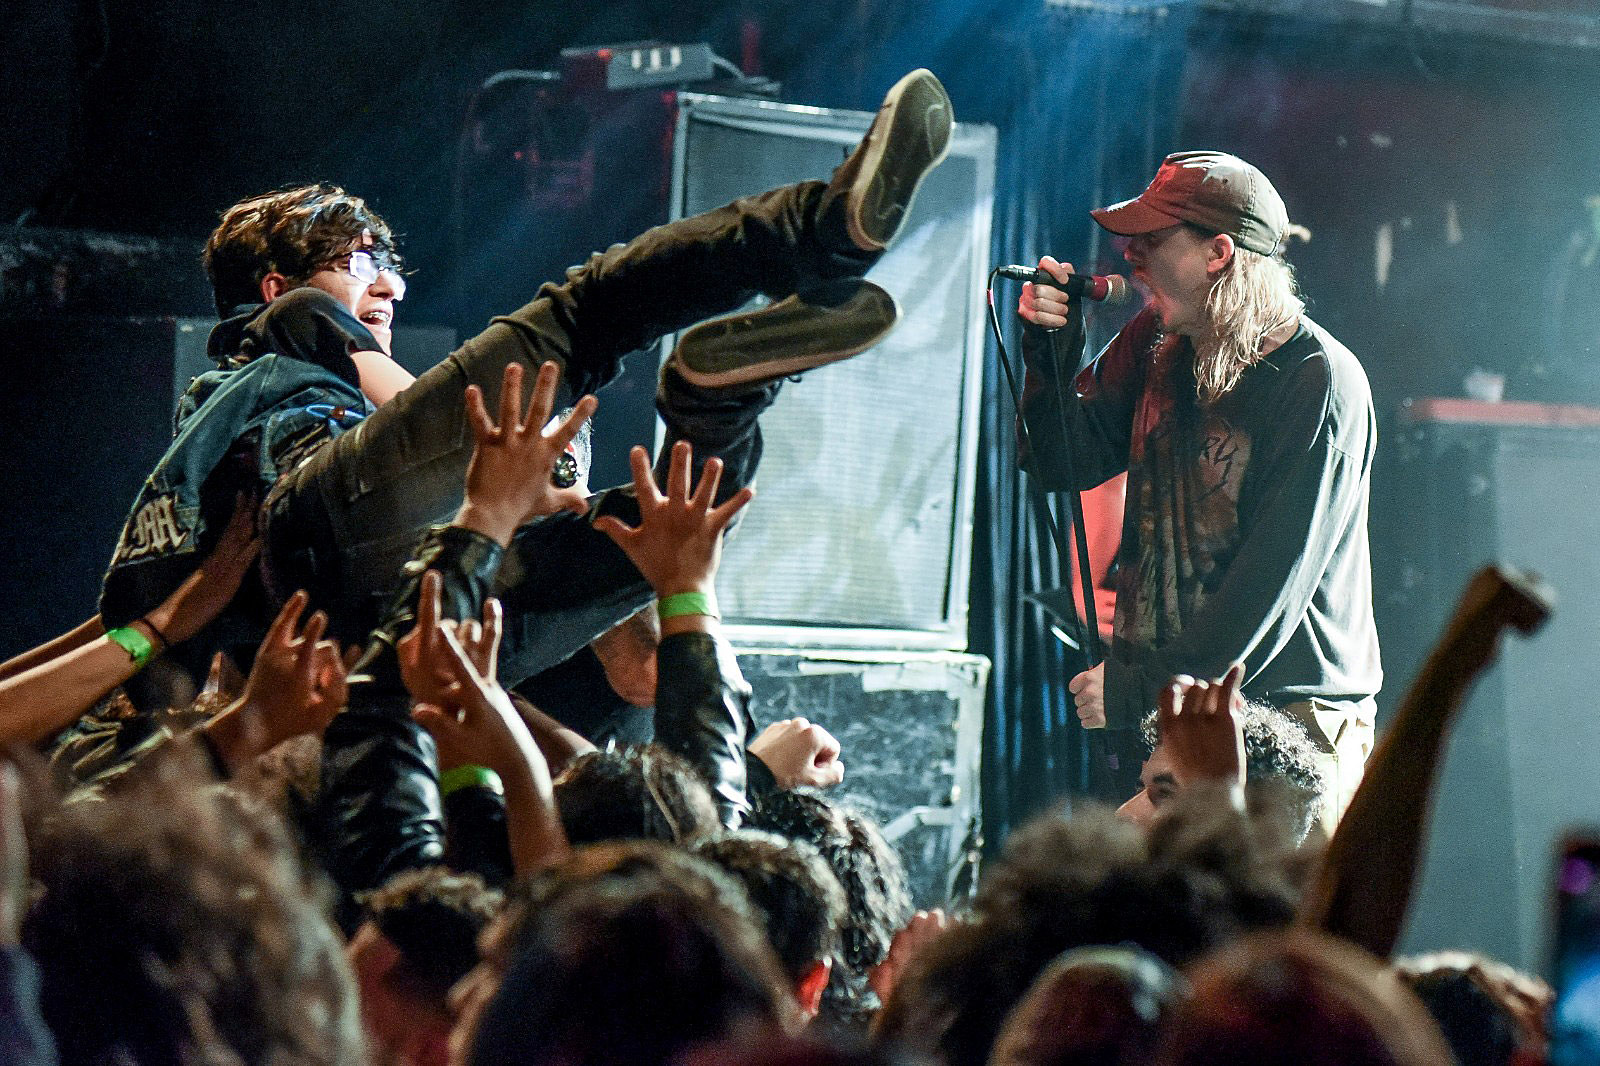 Power Trip at Irving Plaza